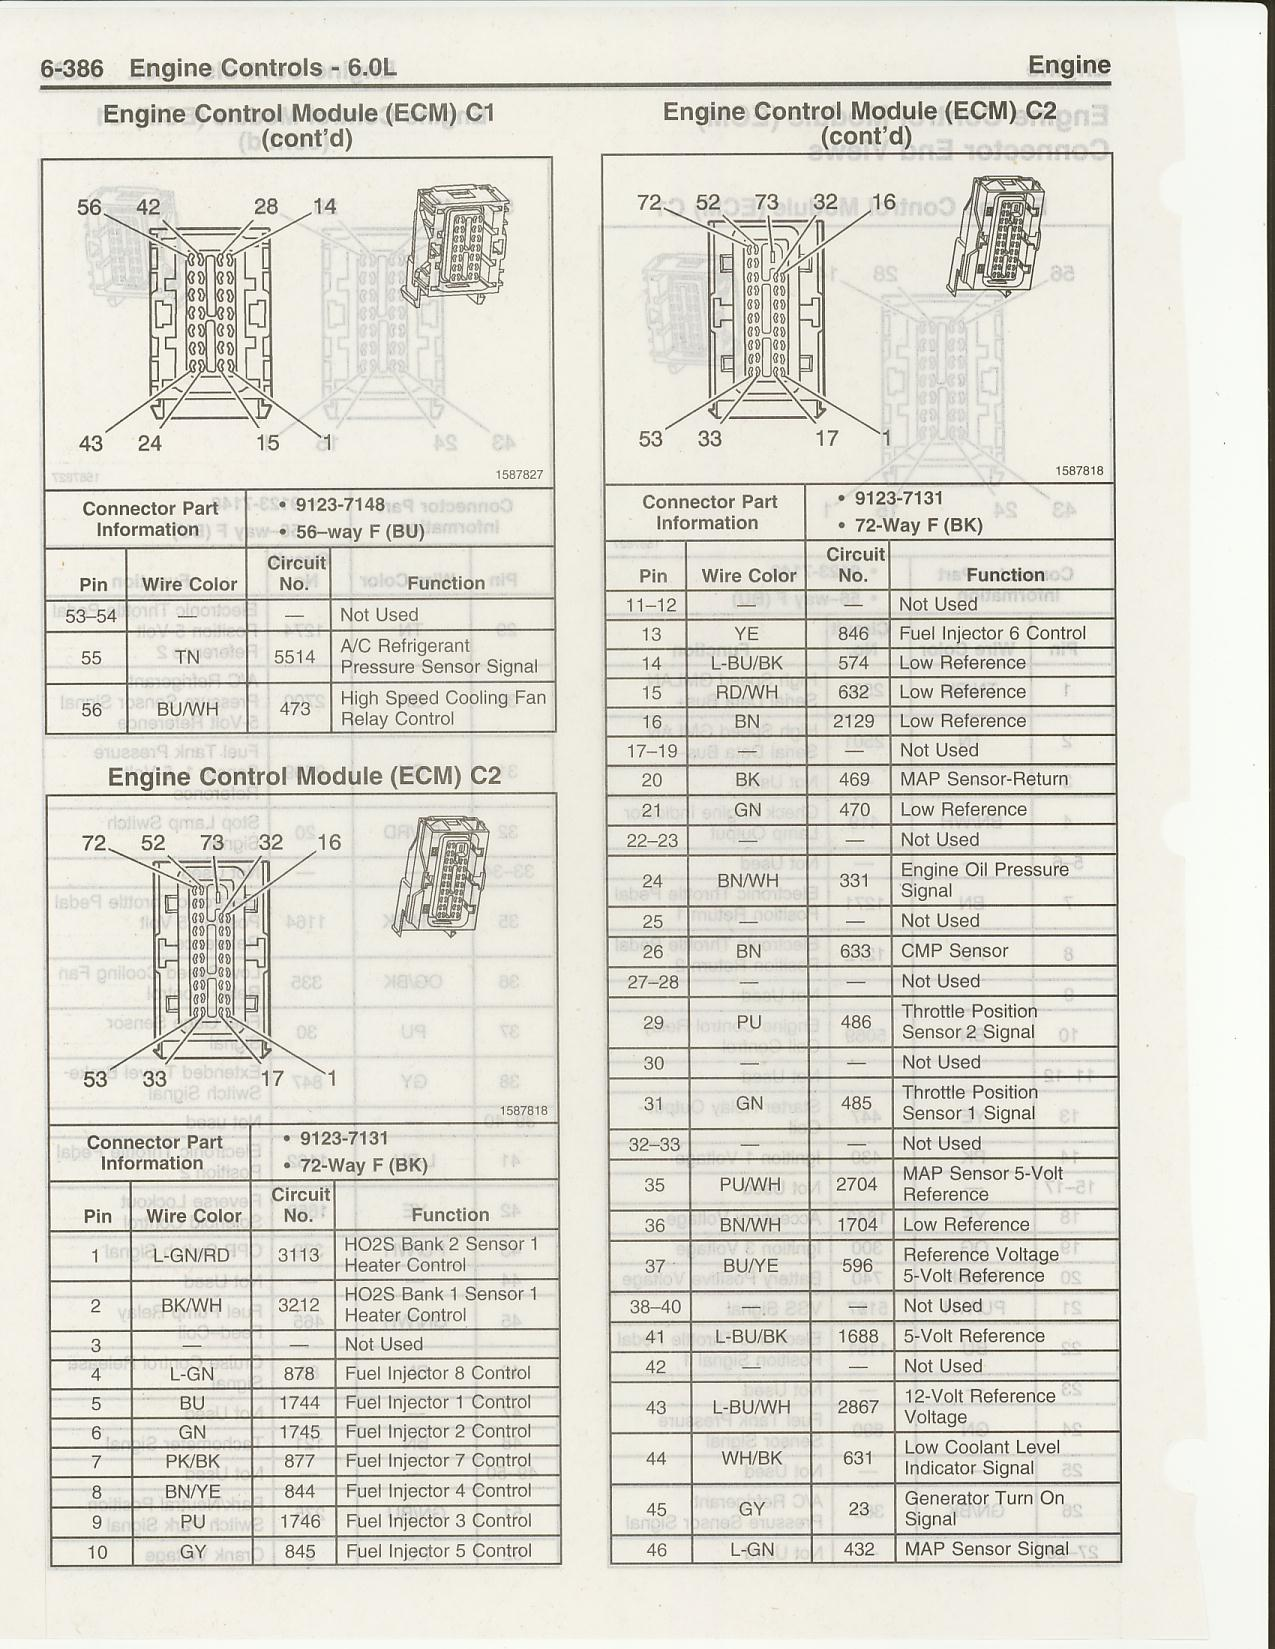 Pinouts And Wiring Diagrams Page 4 Ls1tech Camaro Firebird Escalade Harness Ls2 C1 C2